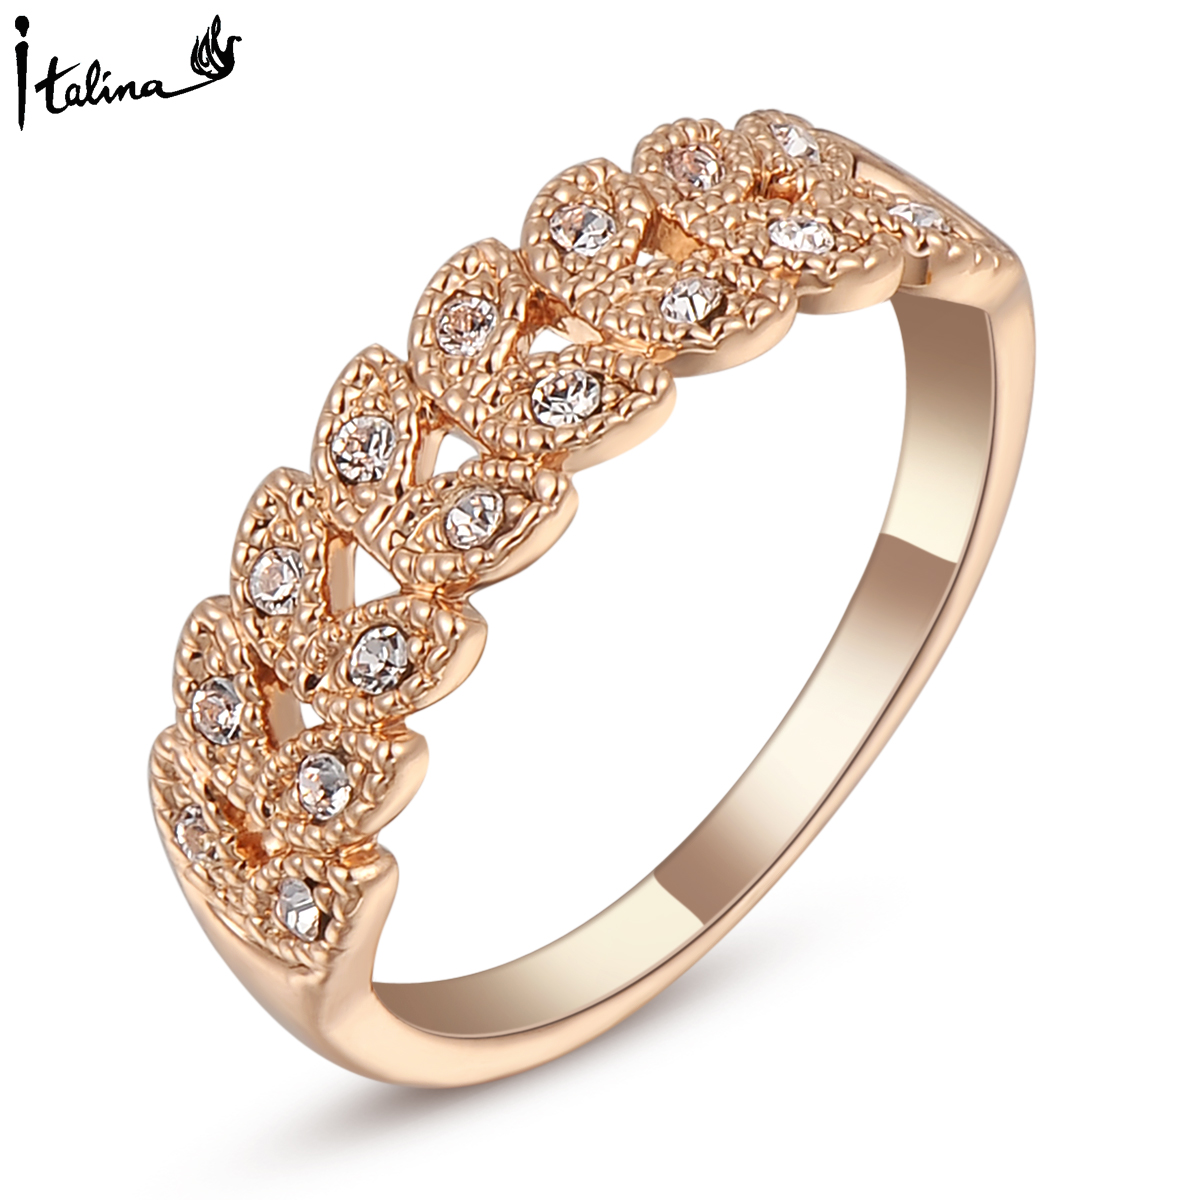 c jewelry with fine high petite prasiolite rings women hot diamonds ring yurman jewellery for sale s david tech albion